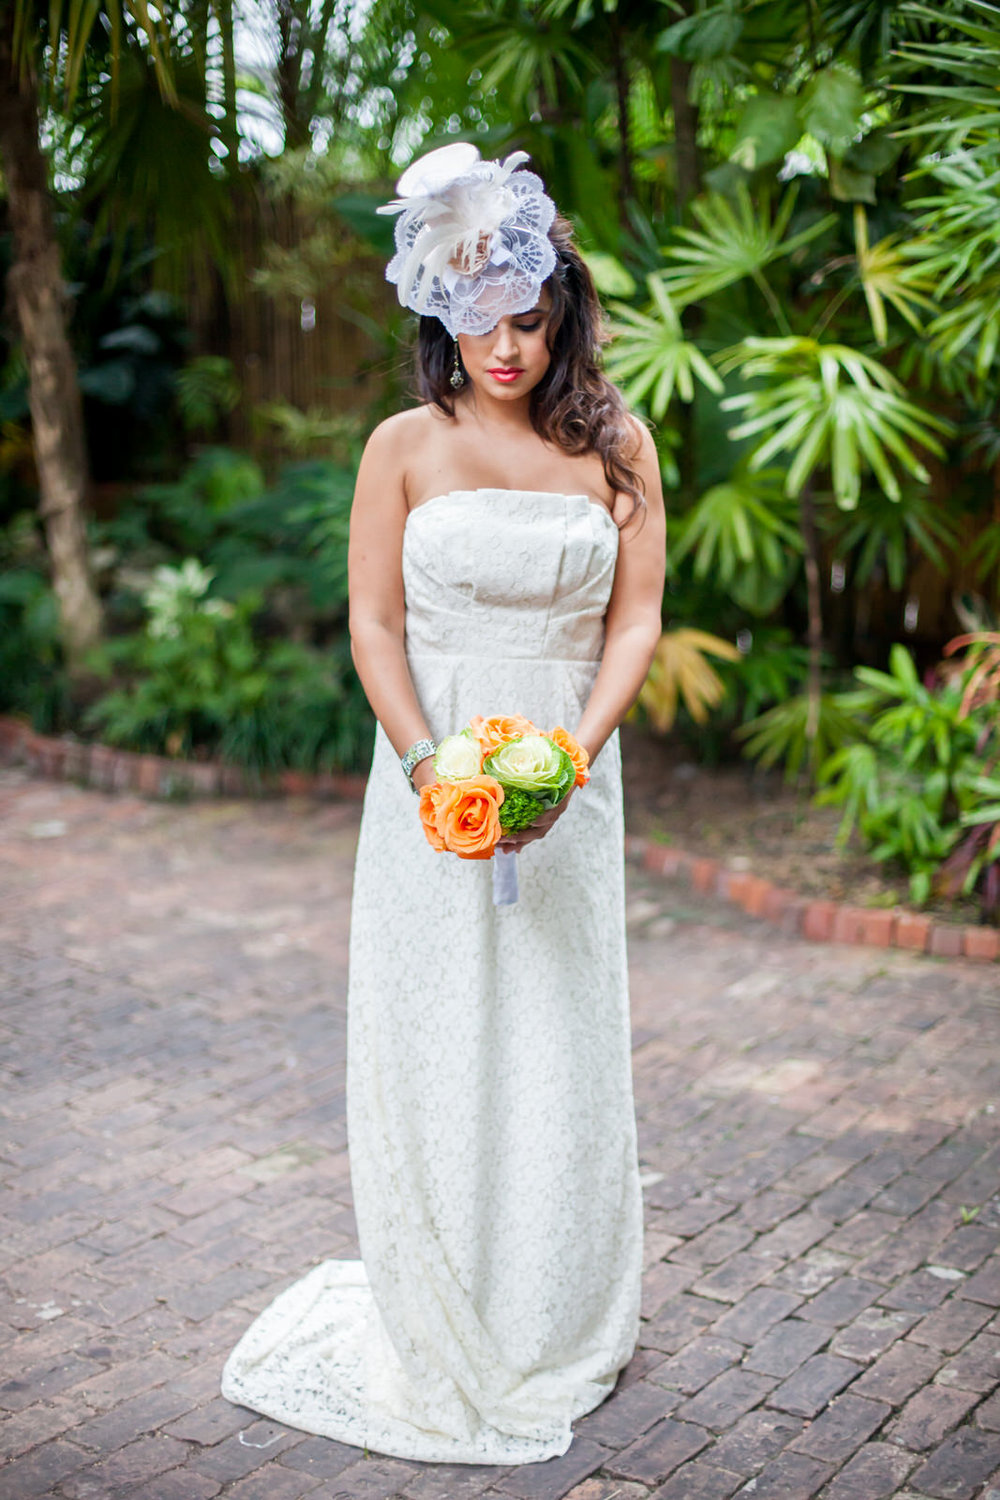 Fall-Inspired-Wedding-Styled-Shoot-Old-Town-Manor-Key-West15.jpg